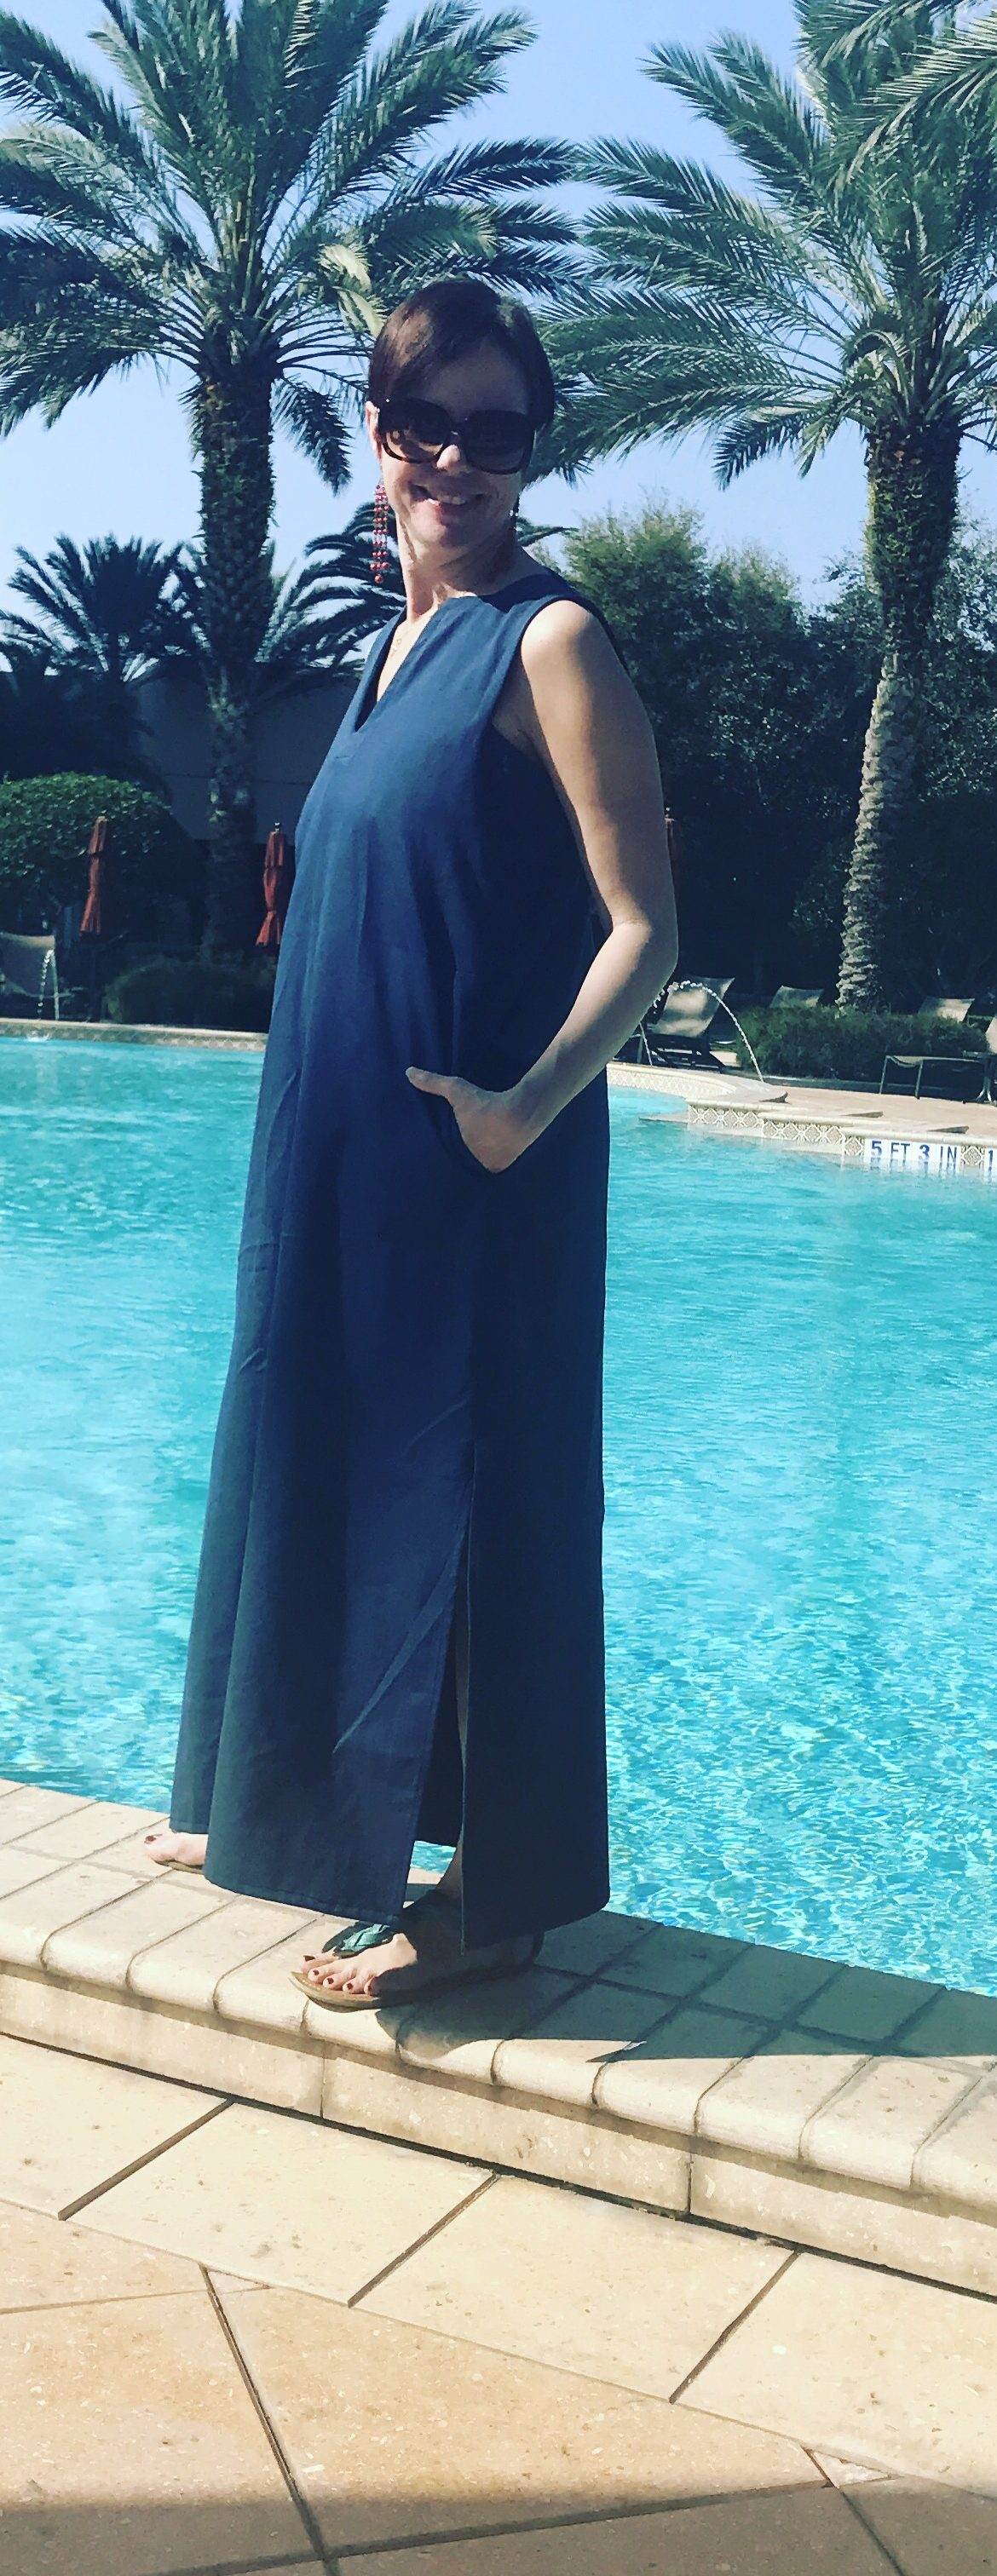 Ann Normandy Maxi Dress Ann Siegle Sew Paradise Marriott Renaissance Seaworld Pool Dress shot